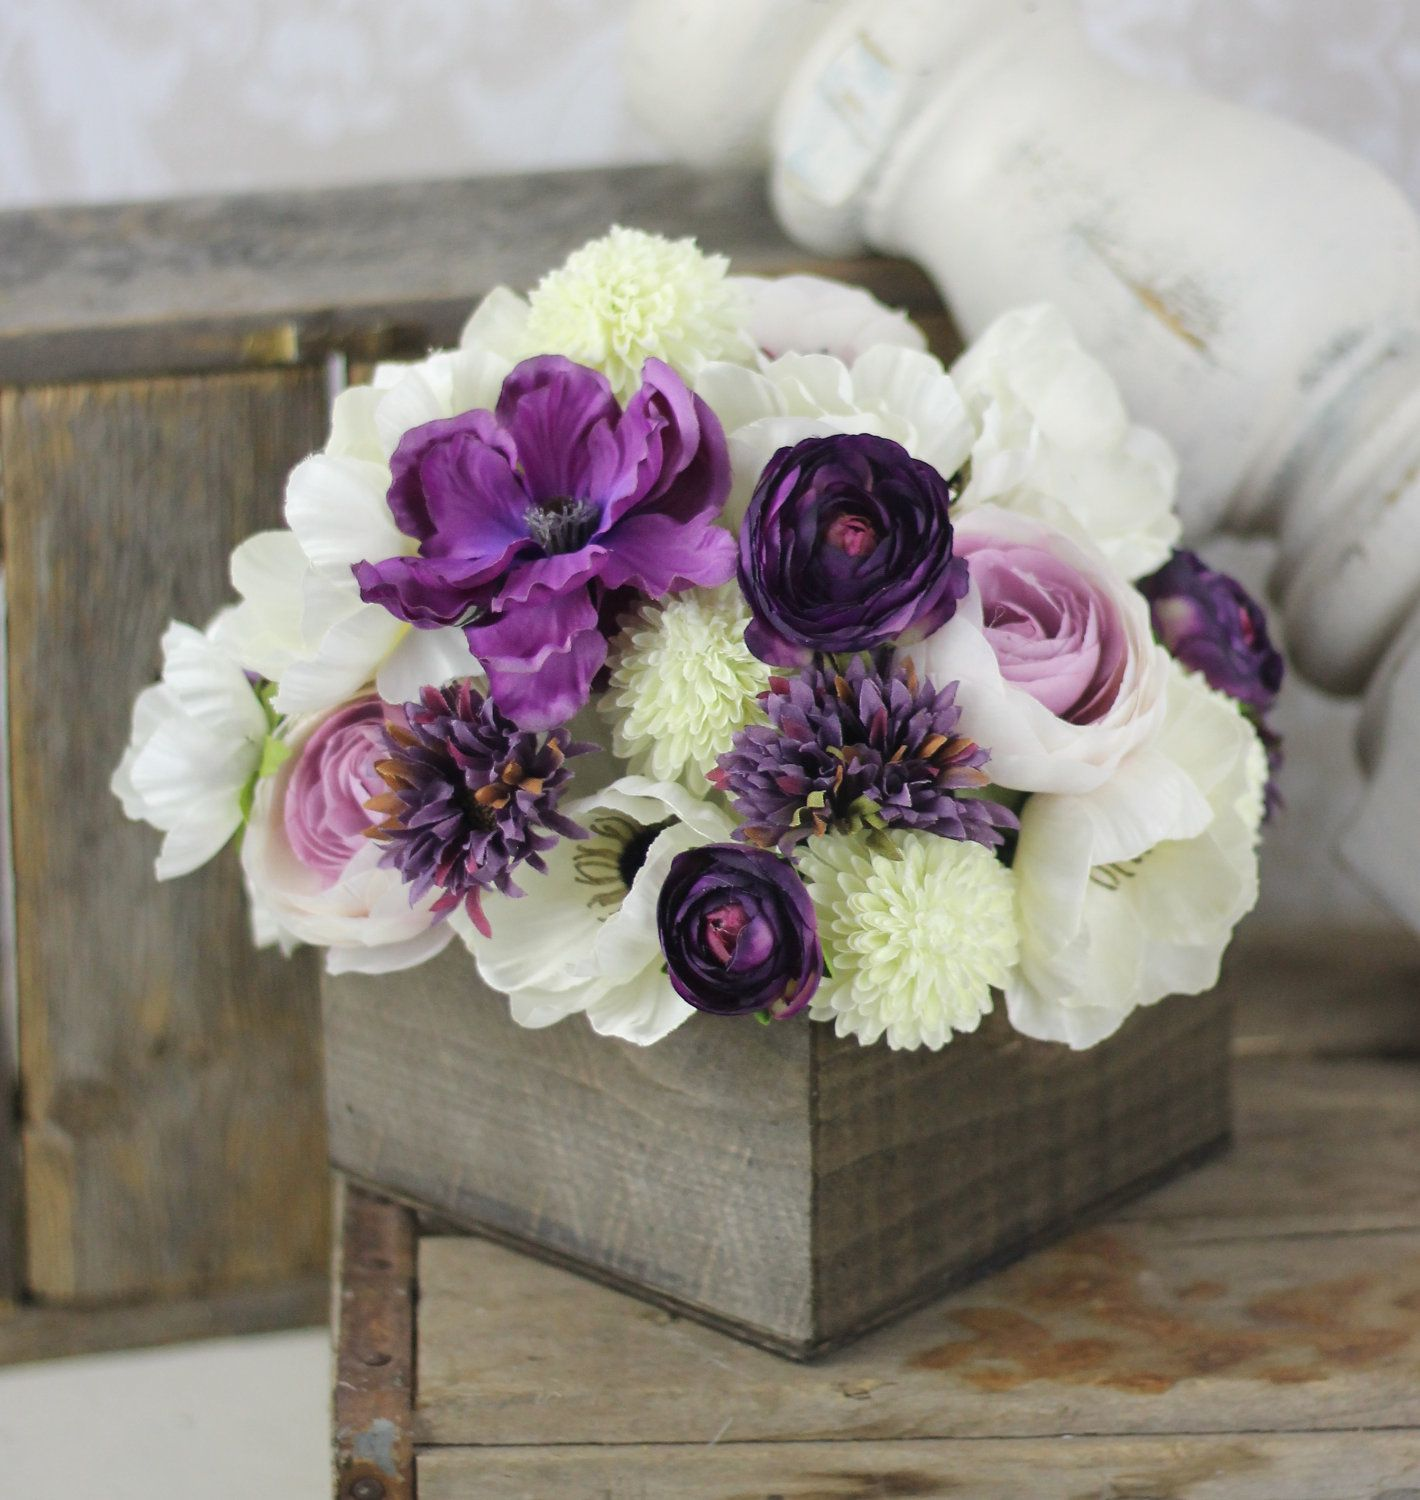 Wedding centerpiece arrangement silk flowers rustic chic wedding wedding centerpiece arrangement silk flowers rustic chic wedding decor 12500 via etsy mightylinksfo